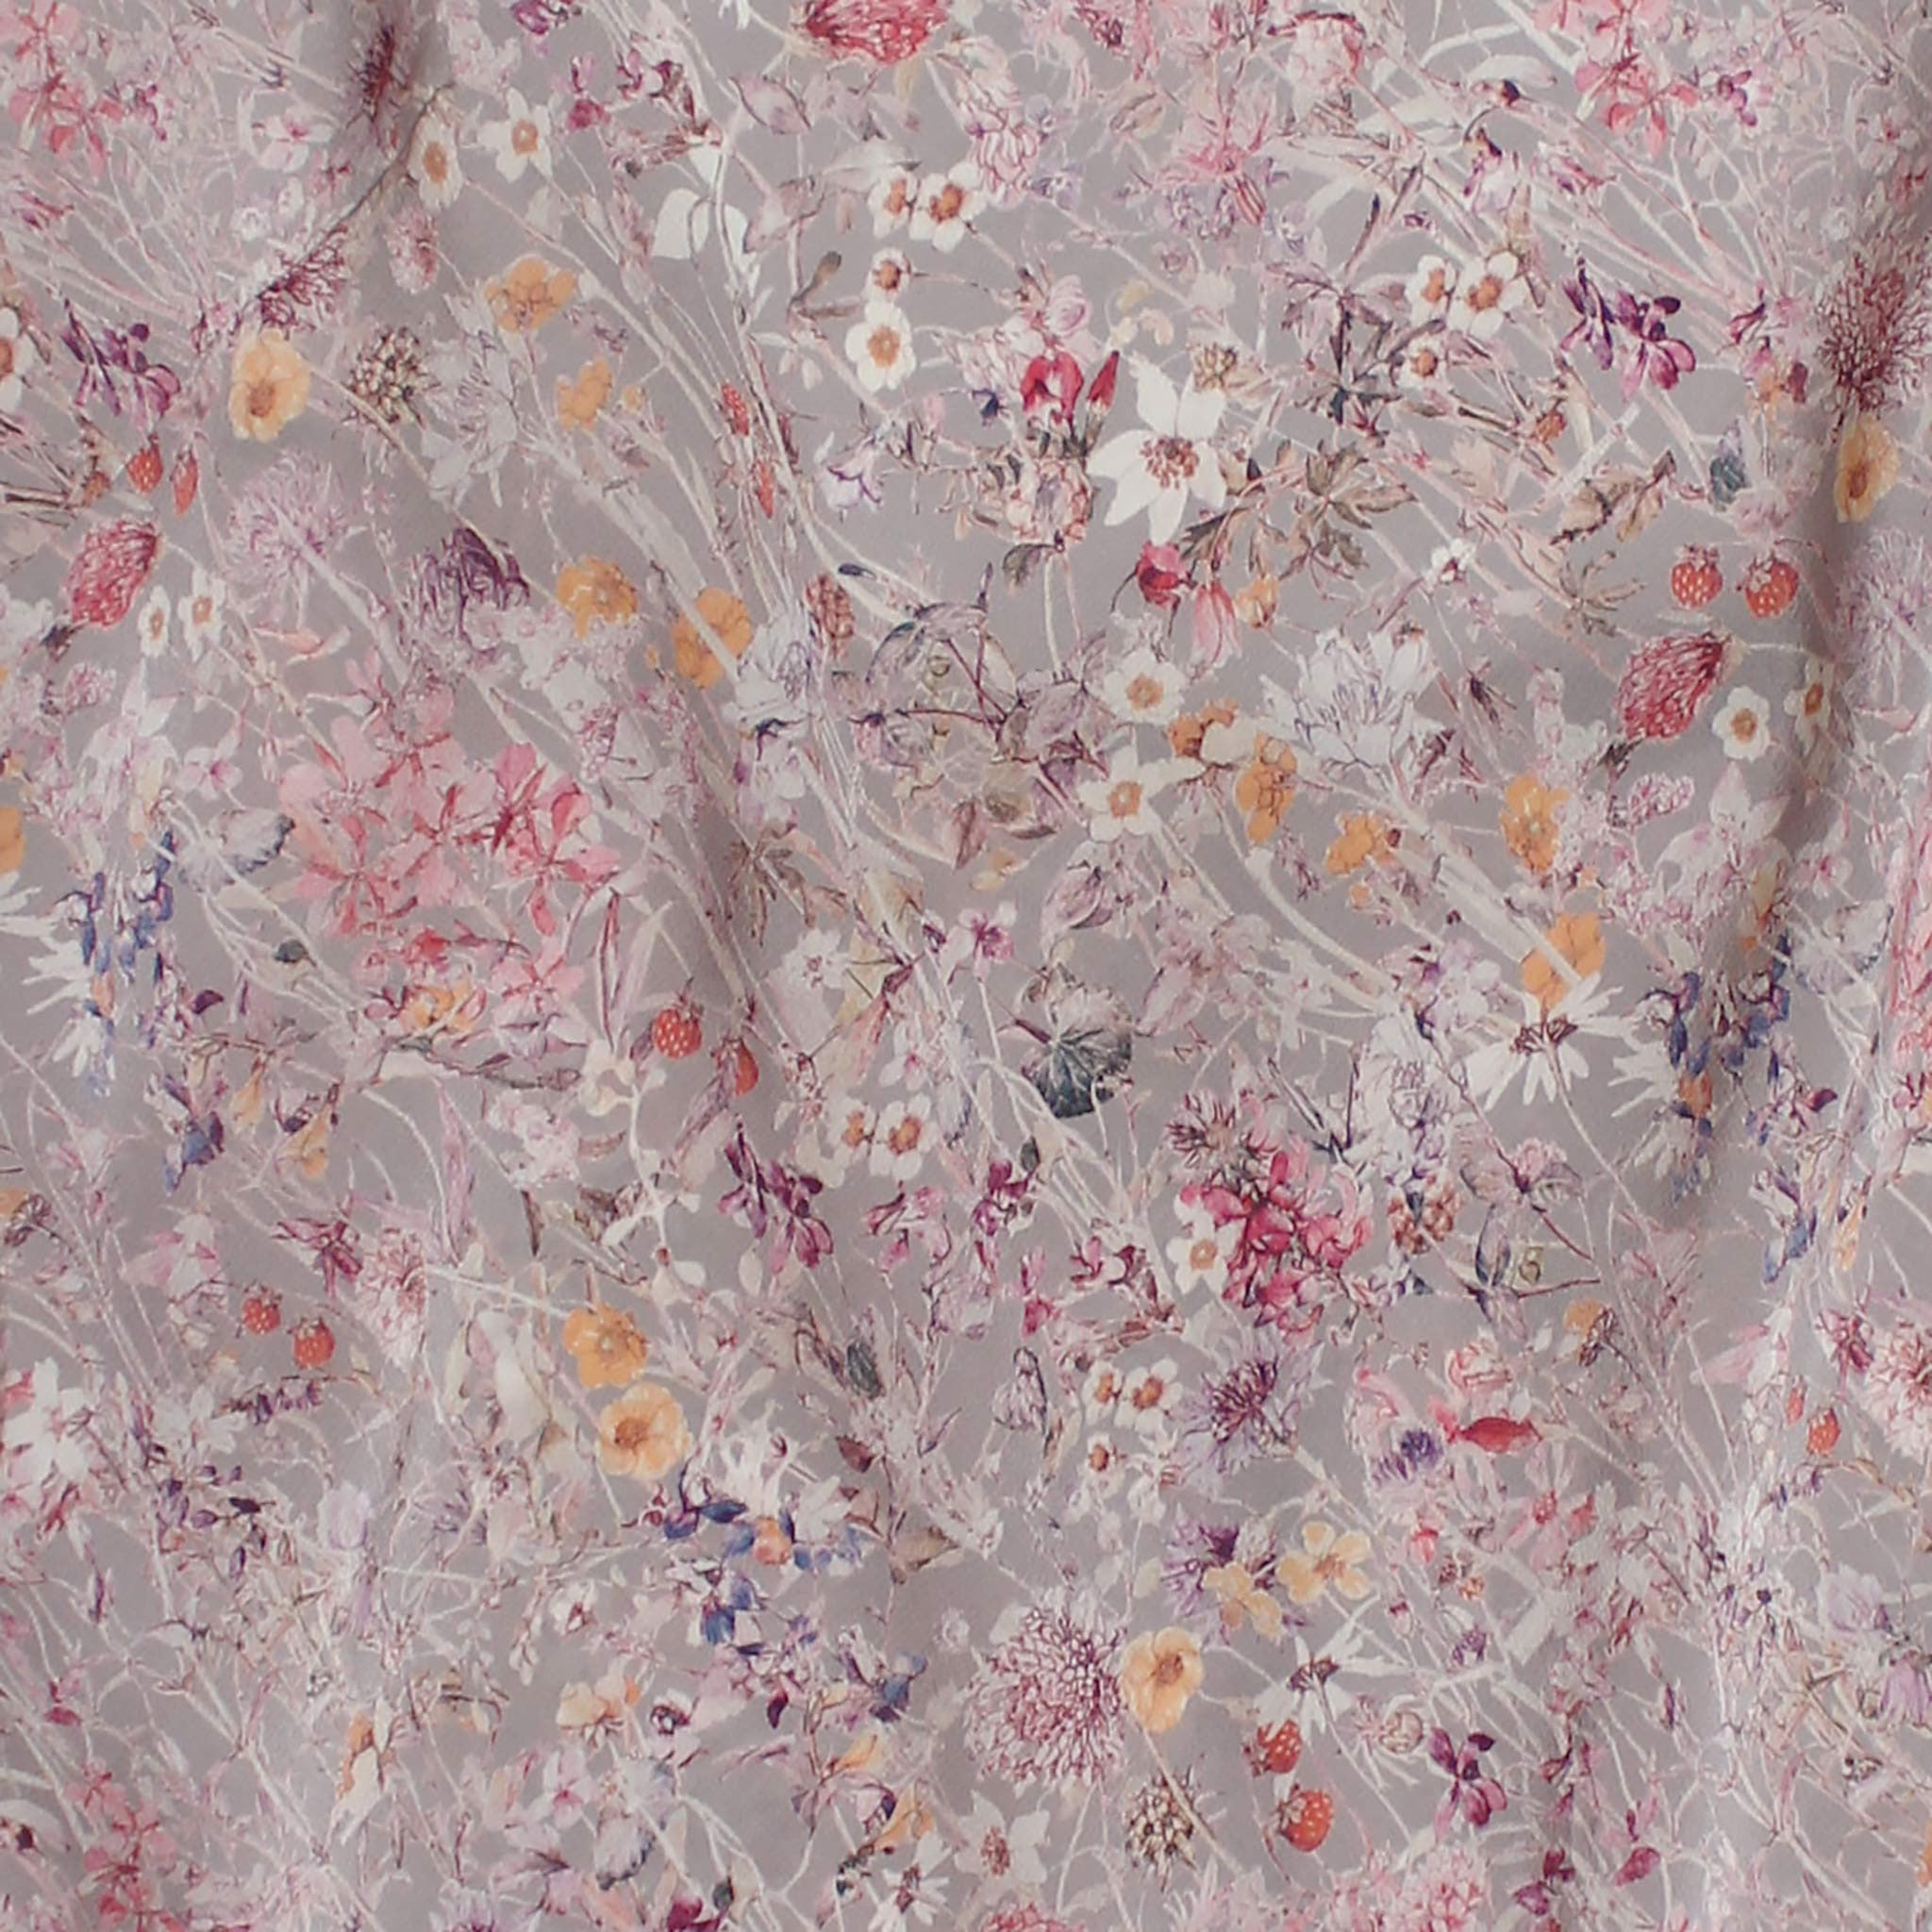 Olwen Camisole in Silver Wildflowers Liberty Print Silk Crepe de Chine